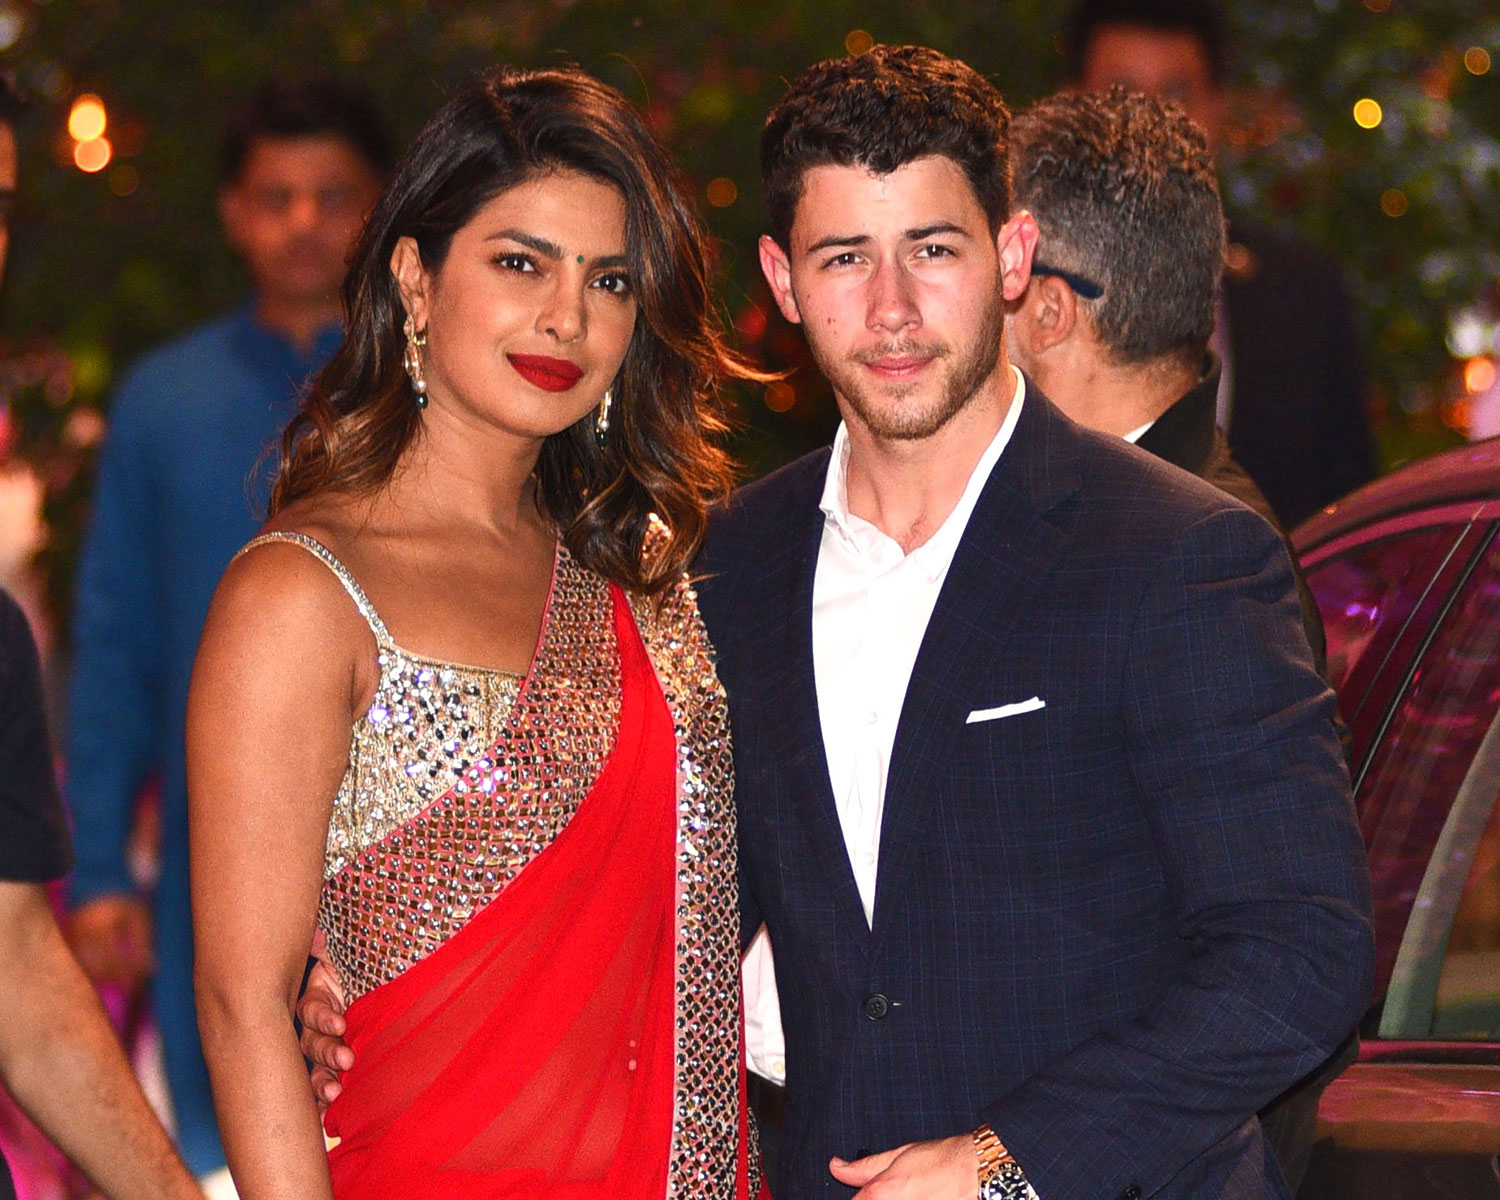 Priyanka Chopra Marries Nick Jonas In Ralph Lauren Wedding Dress